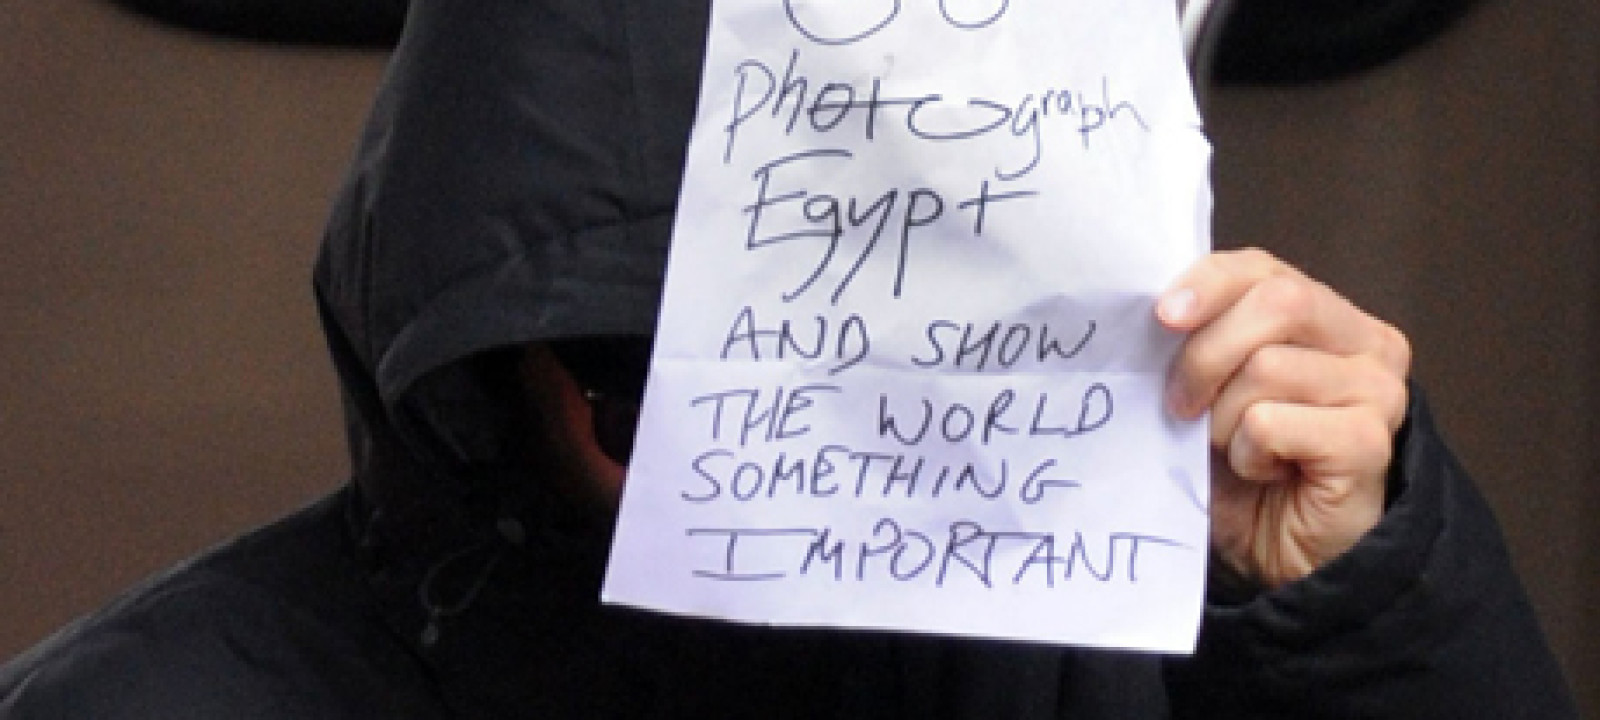 460x300_cumberbatch_gophotograph_egypt